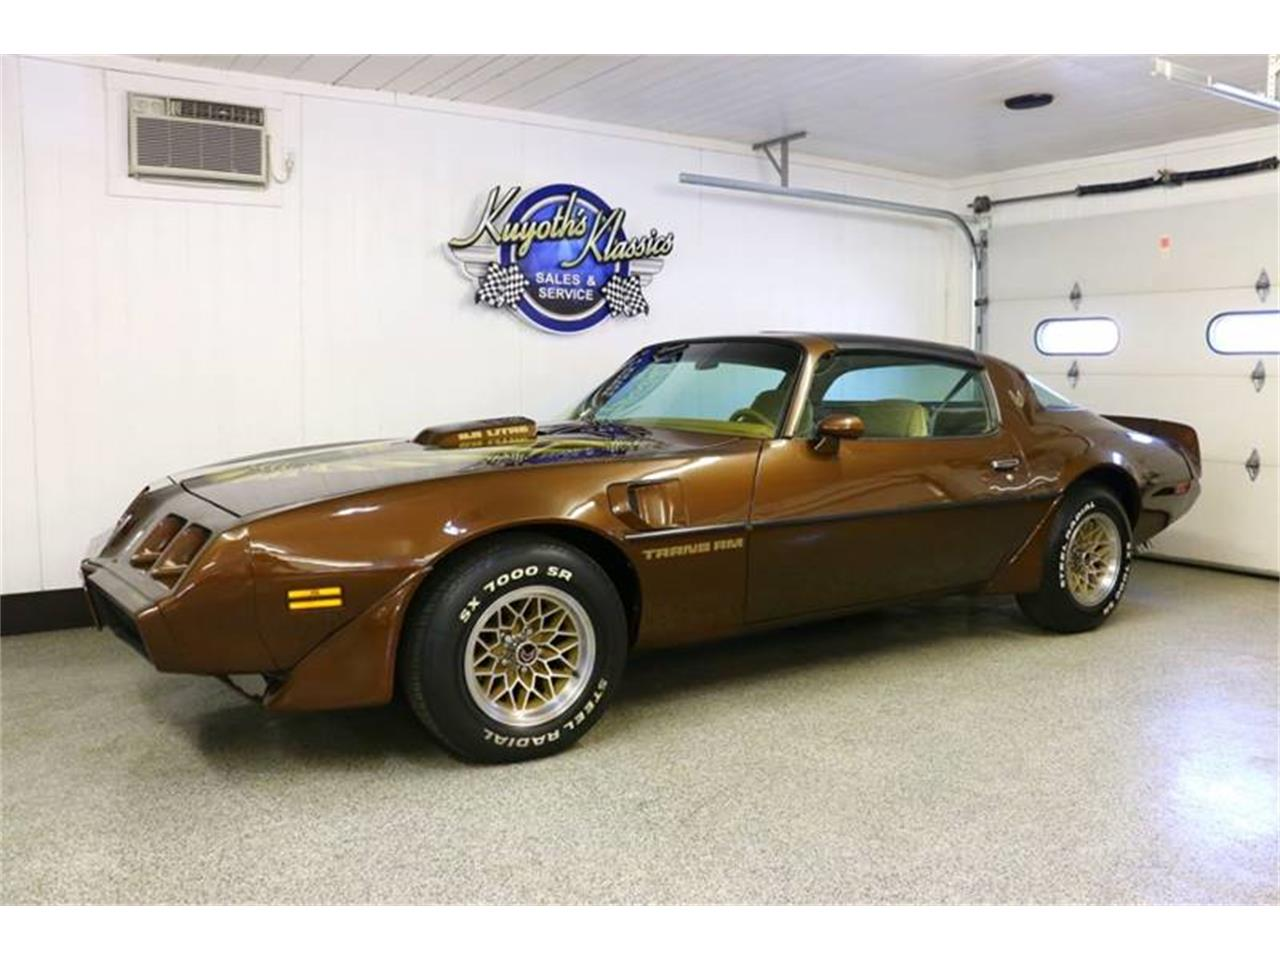 1979 Pontiac Firebird Trans Am for sale in Stratford, WI – photo 2